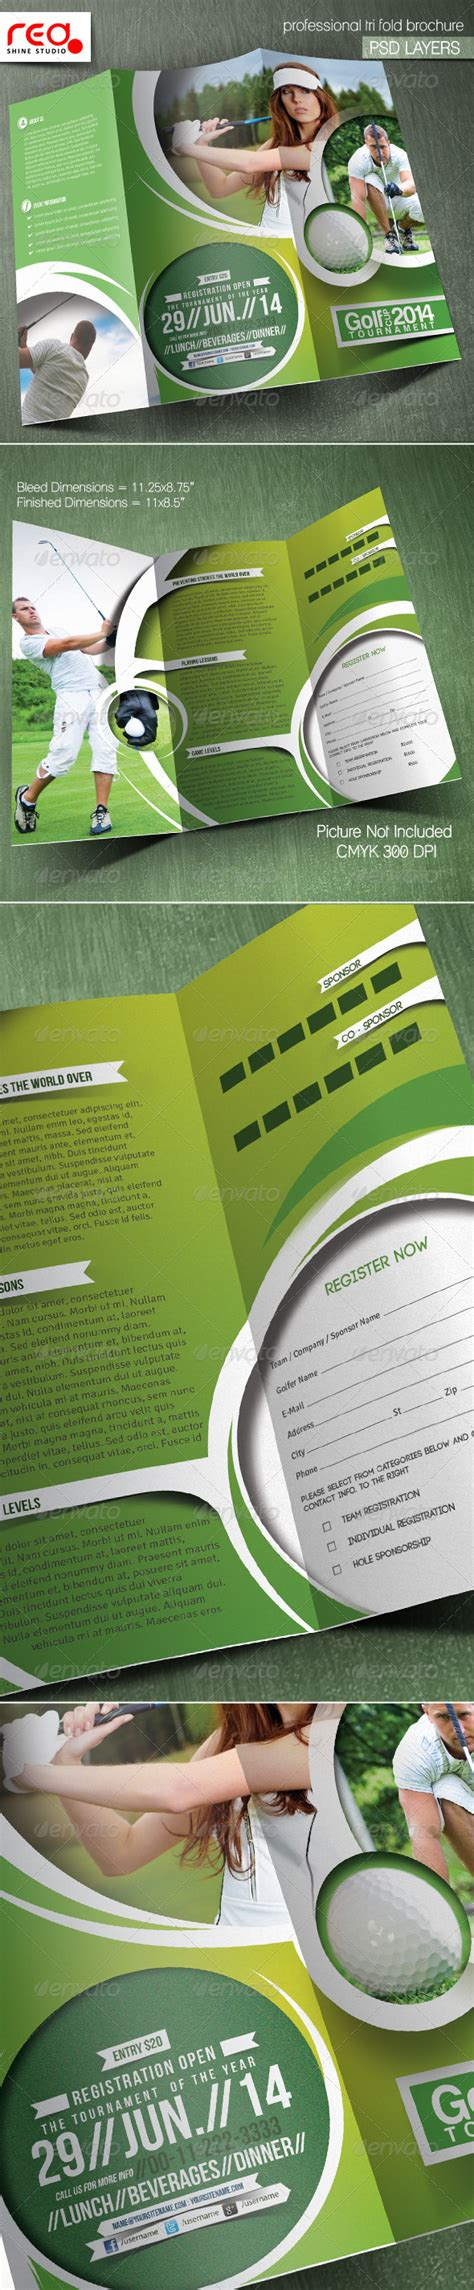 golf tournament trifold brochure template by